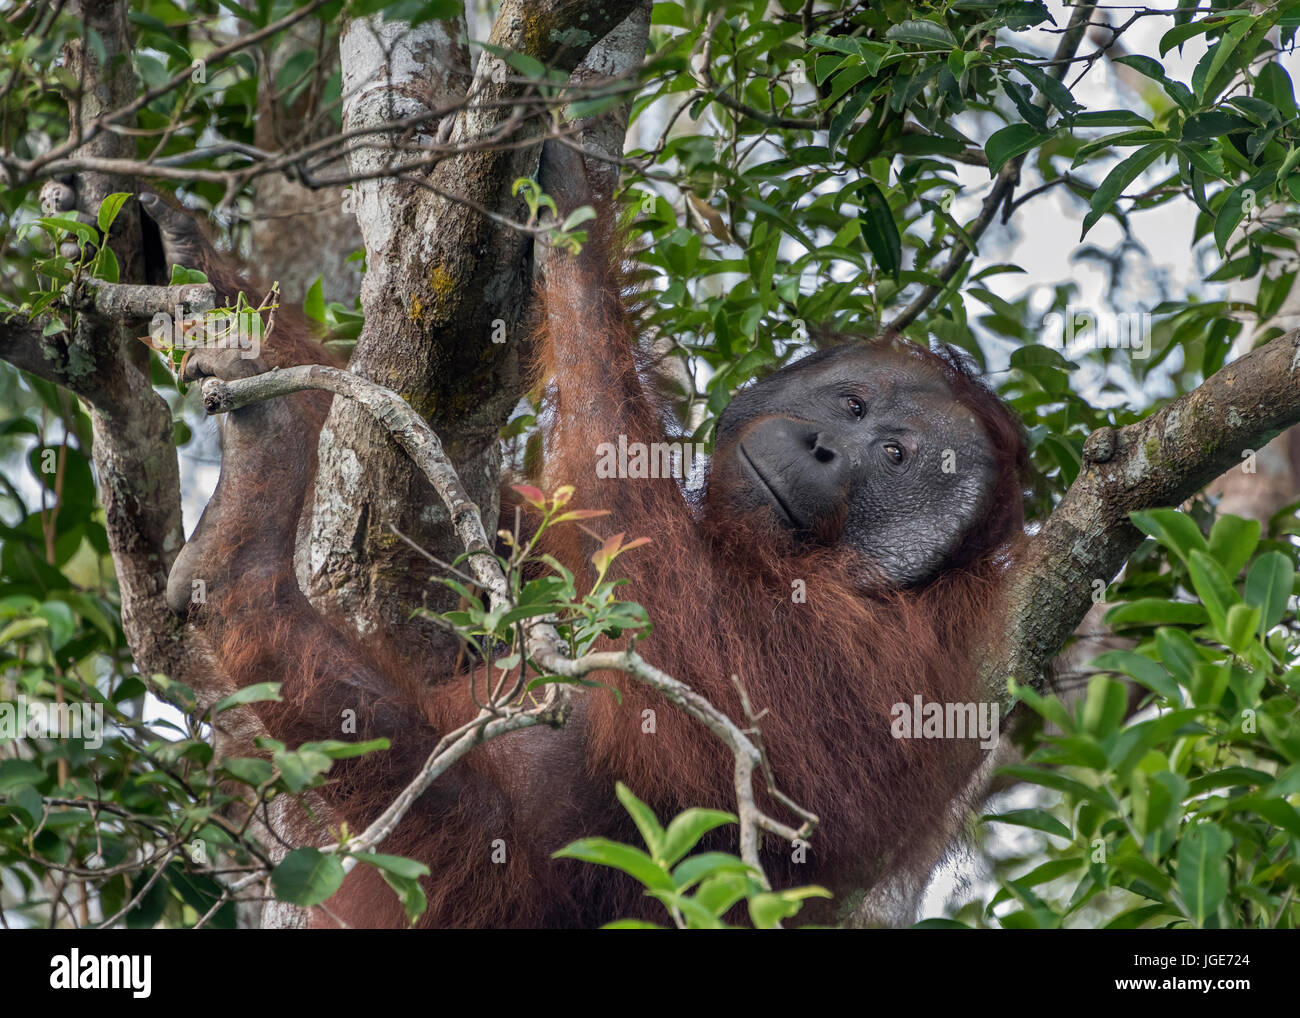 L'orang-outan en souriant haut arbre, parc national de Tanjung Puting, Kalimantan, Indonésie Photo Stock